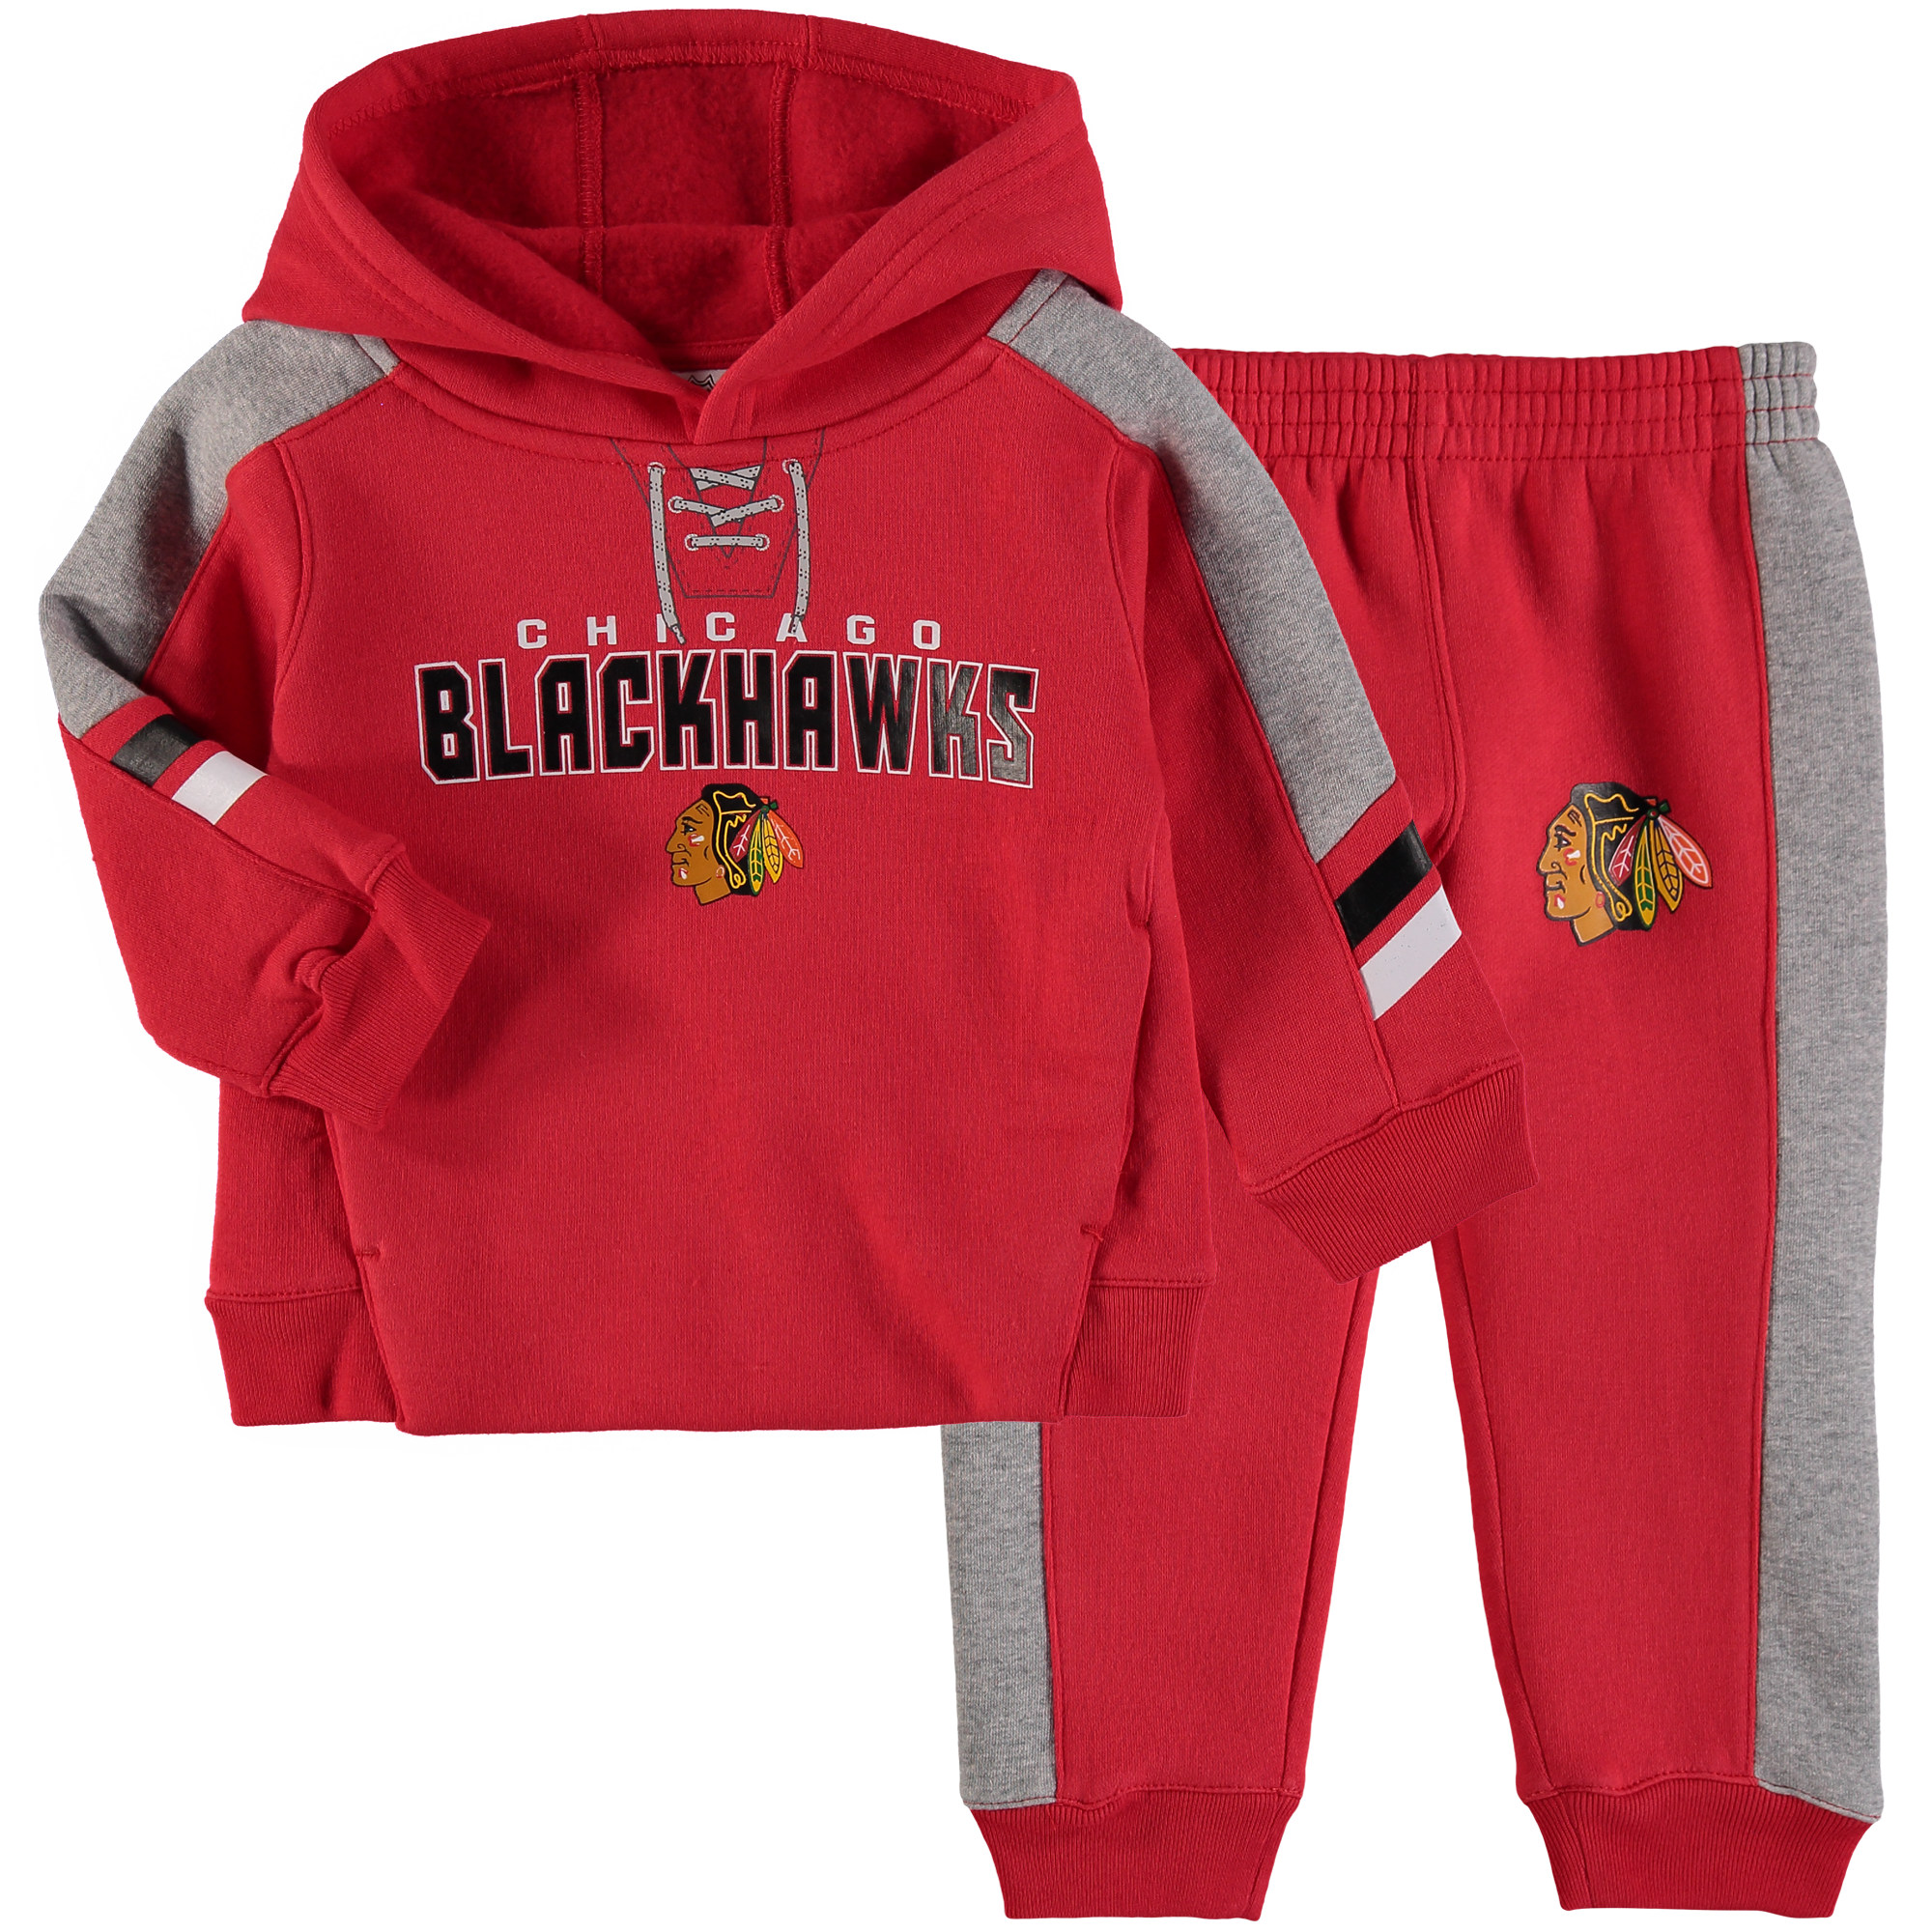 Chicago Blackhawks Infant Power Forward Hockey Hoodie and Pant Set - Red